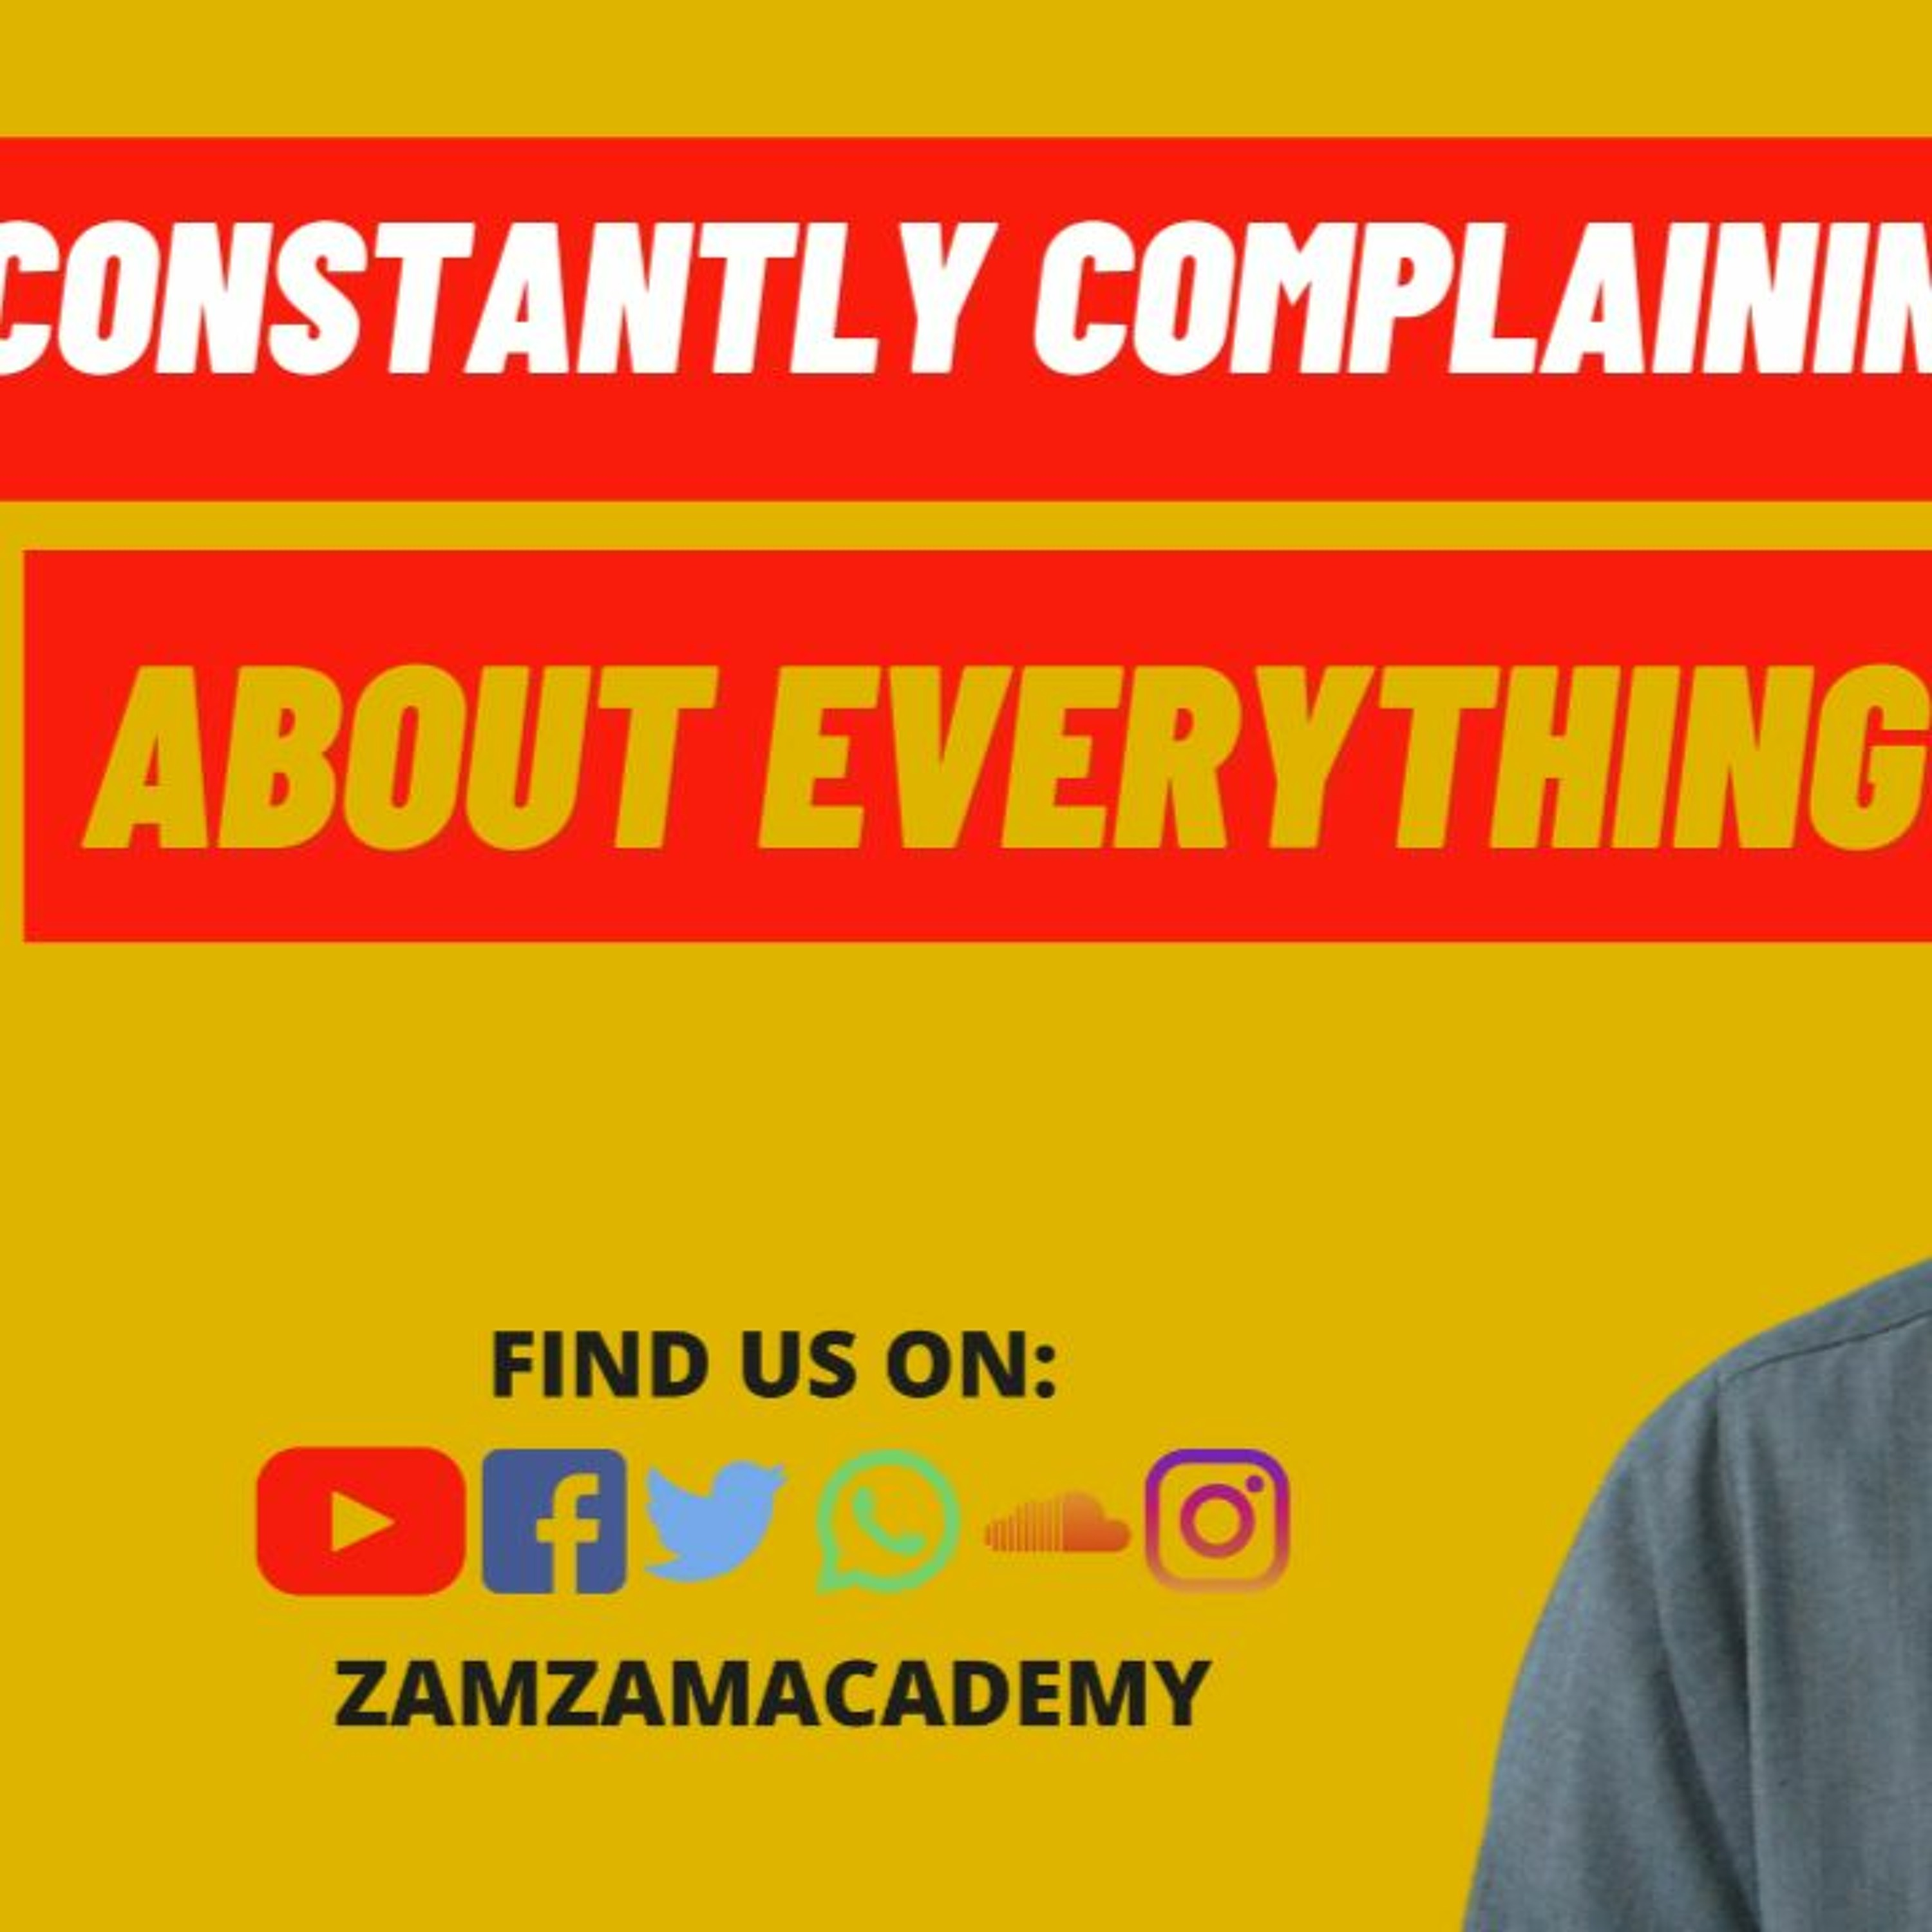 Constantly Complaining About Everything